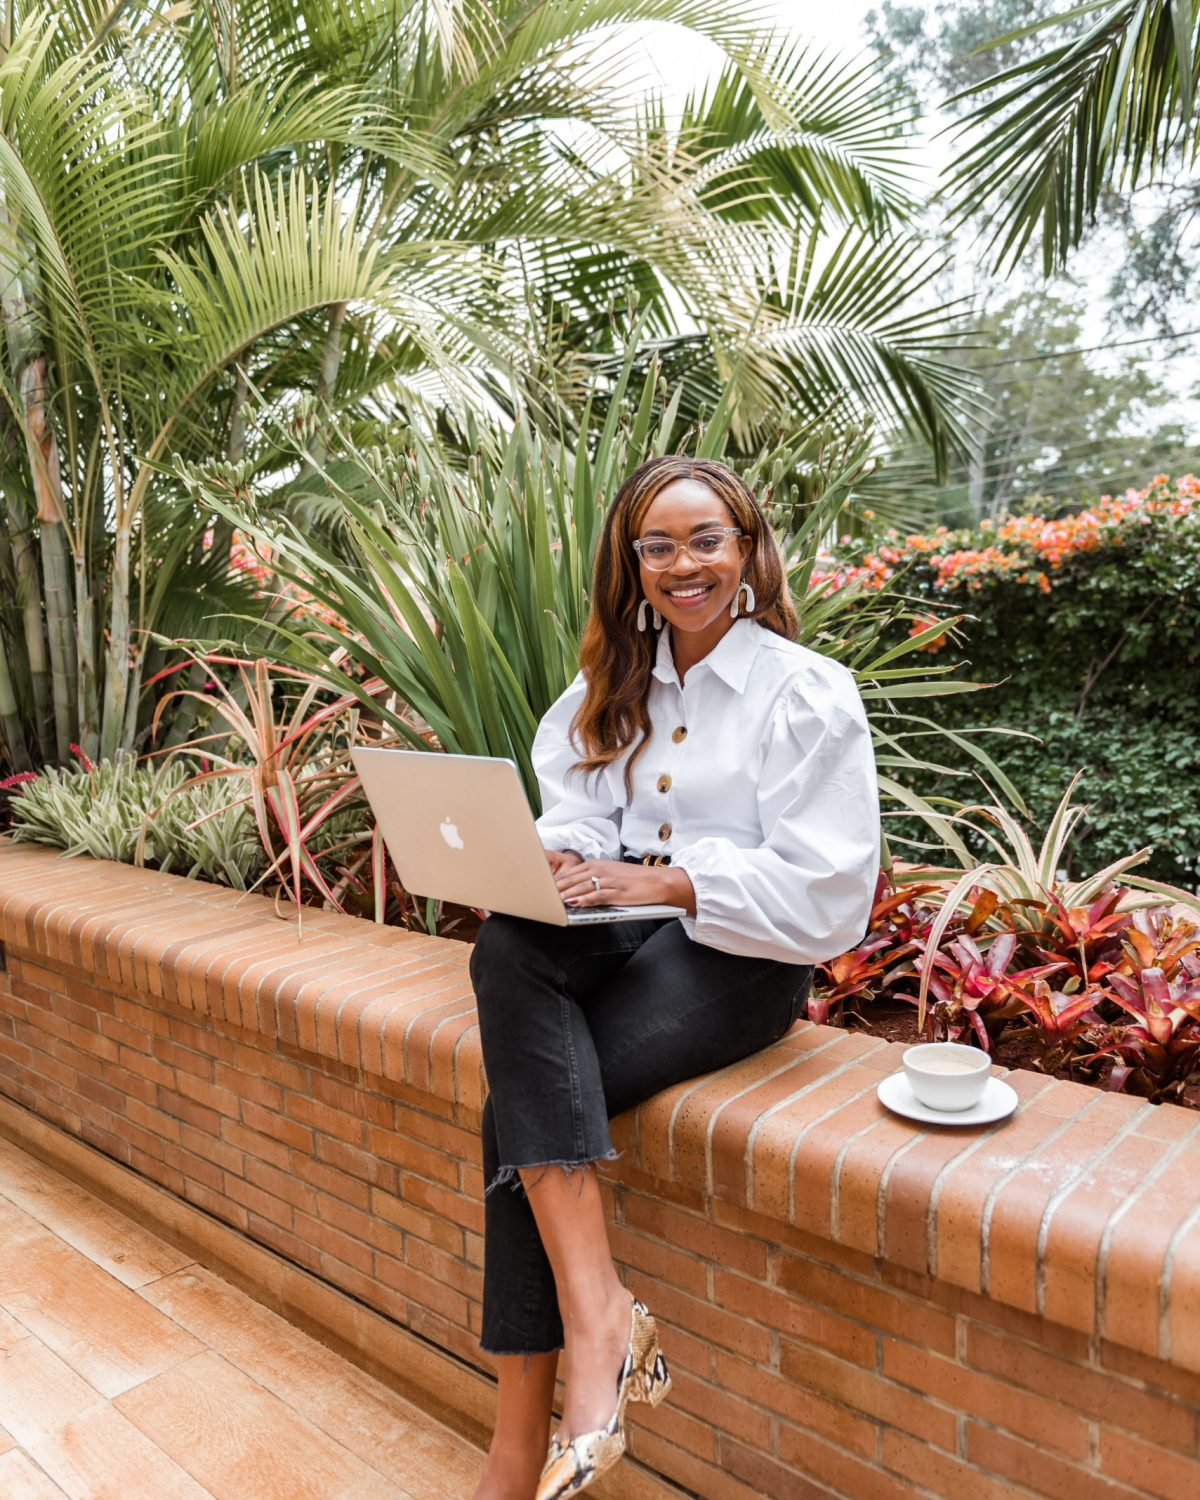 Ijeoma Kola sitting outdoors and smiling with computer on lap and cup of tea next to her